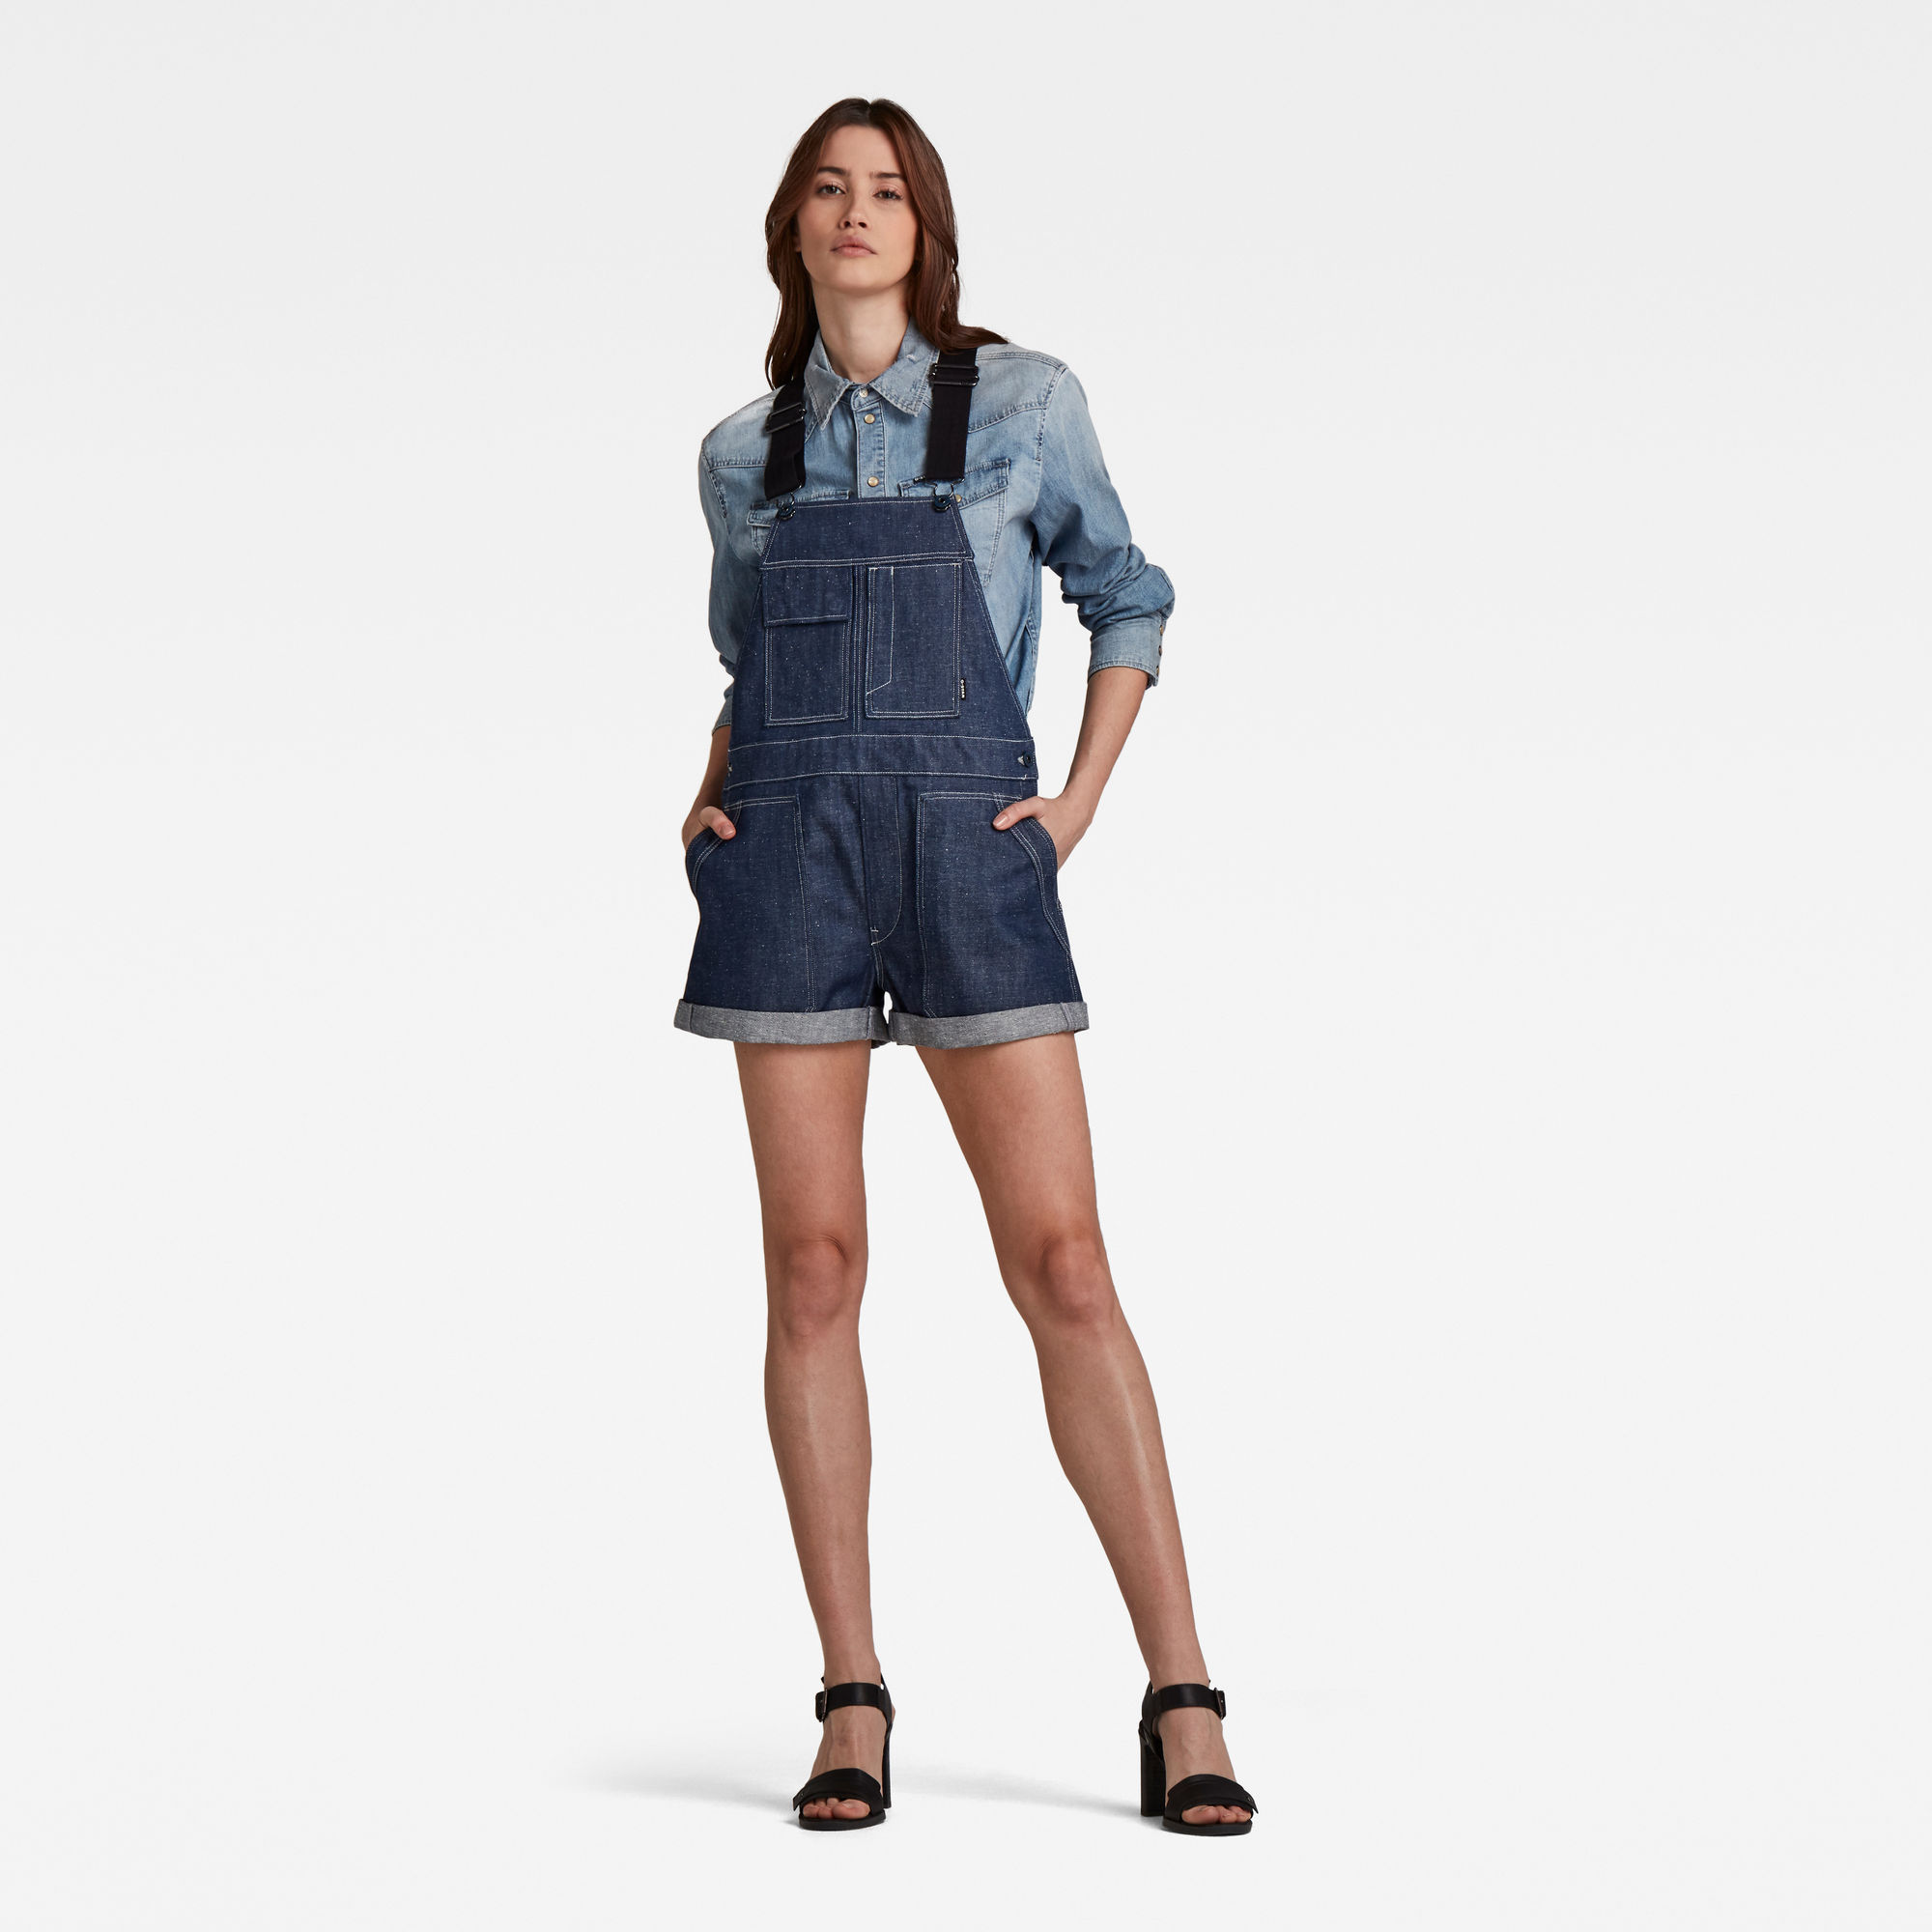 G-Star RAW Dames Overal Utility BF Short Donkerblauw